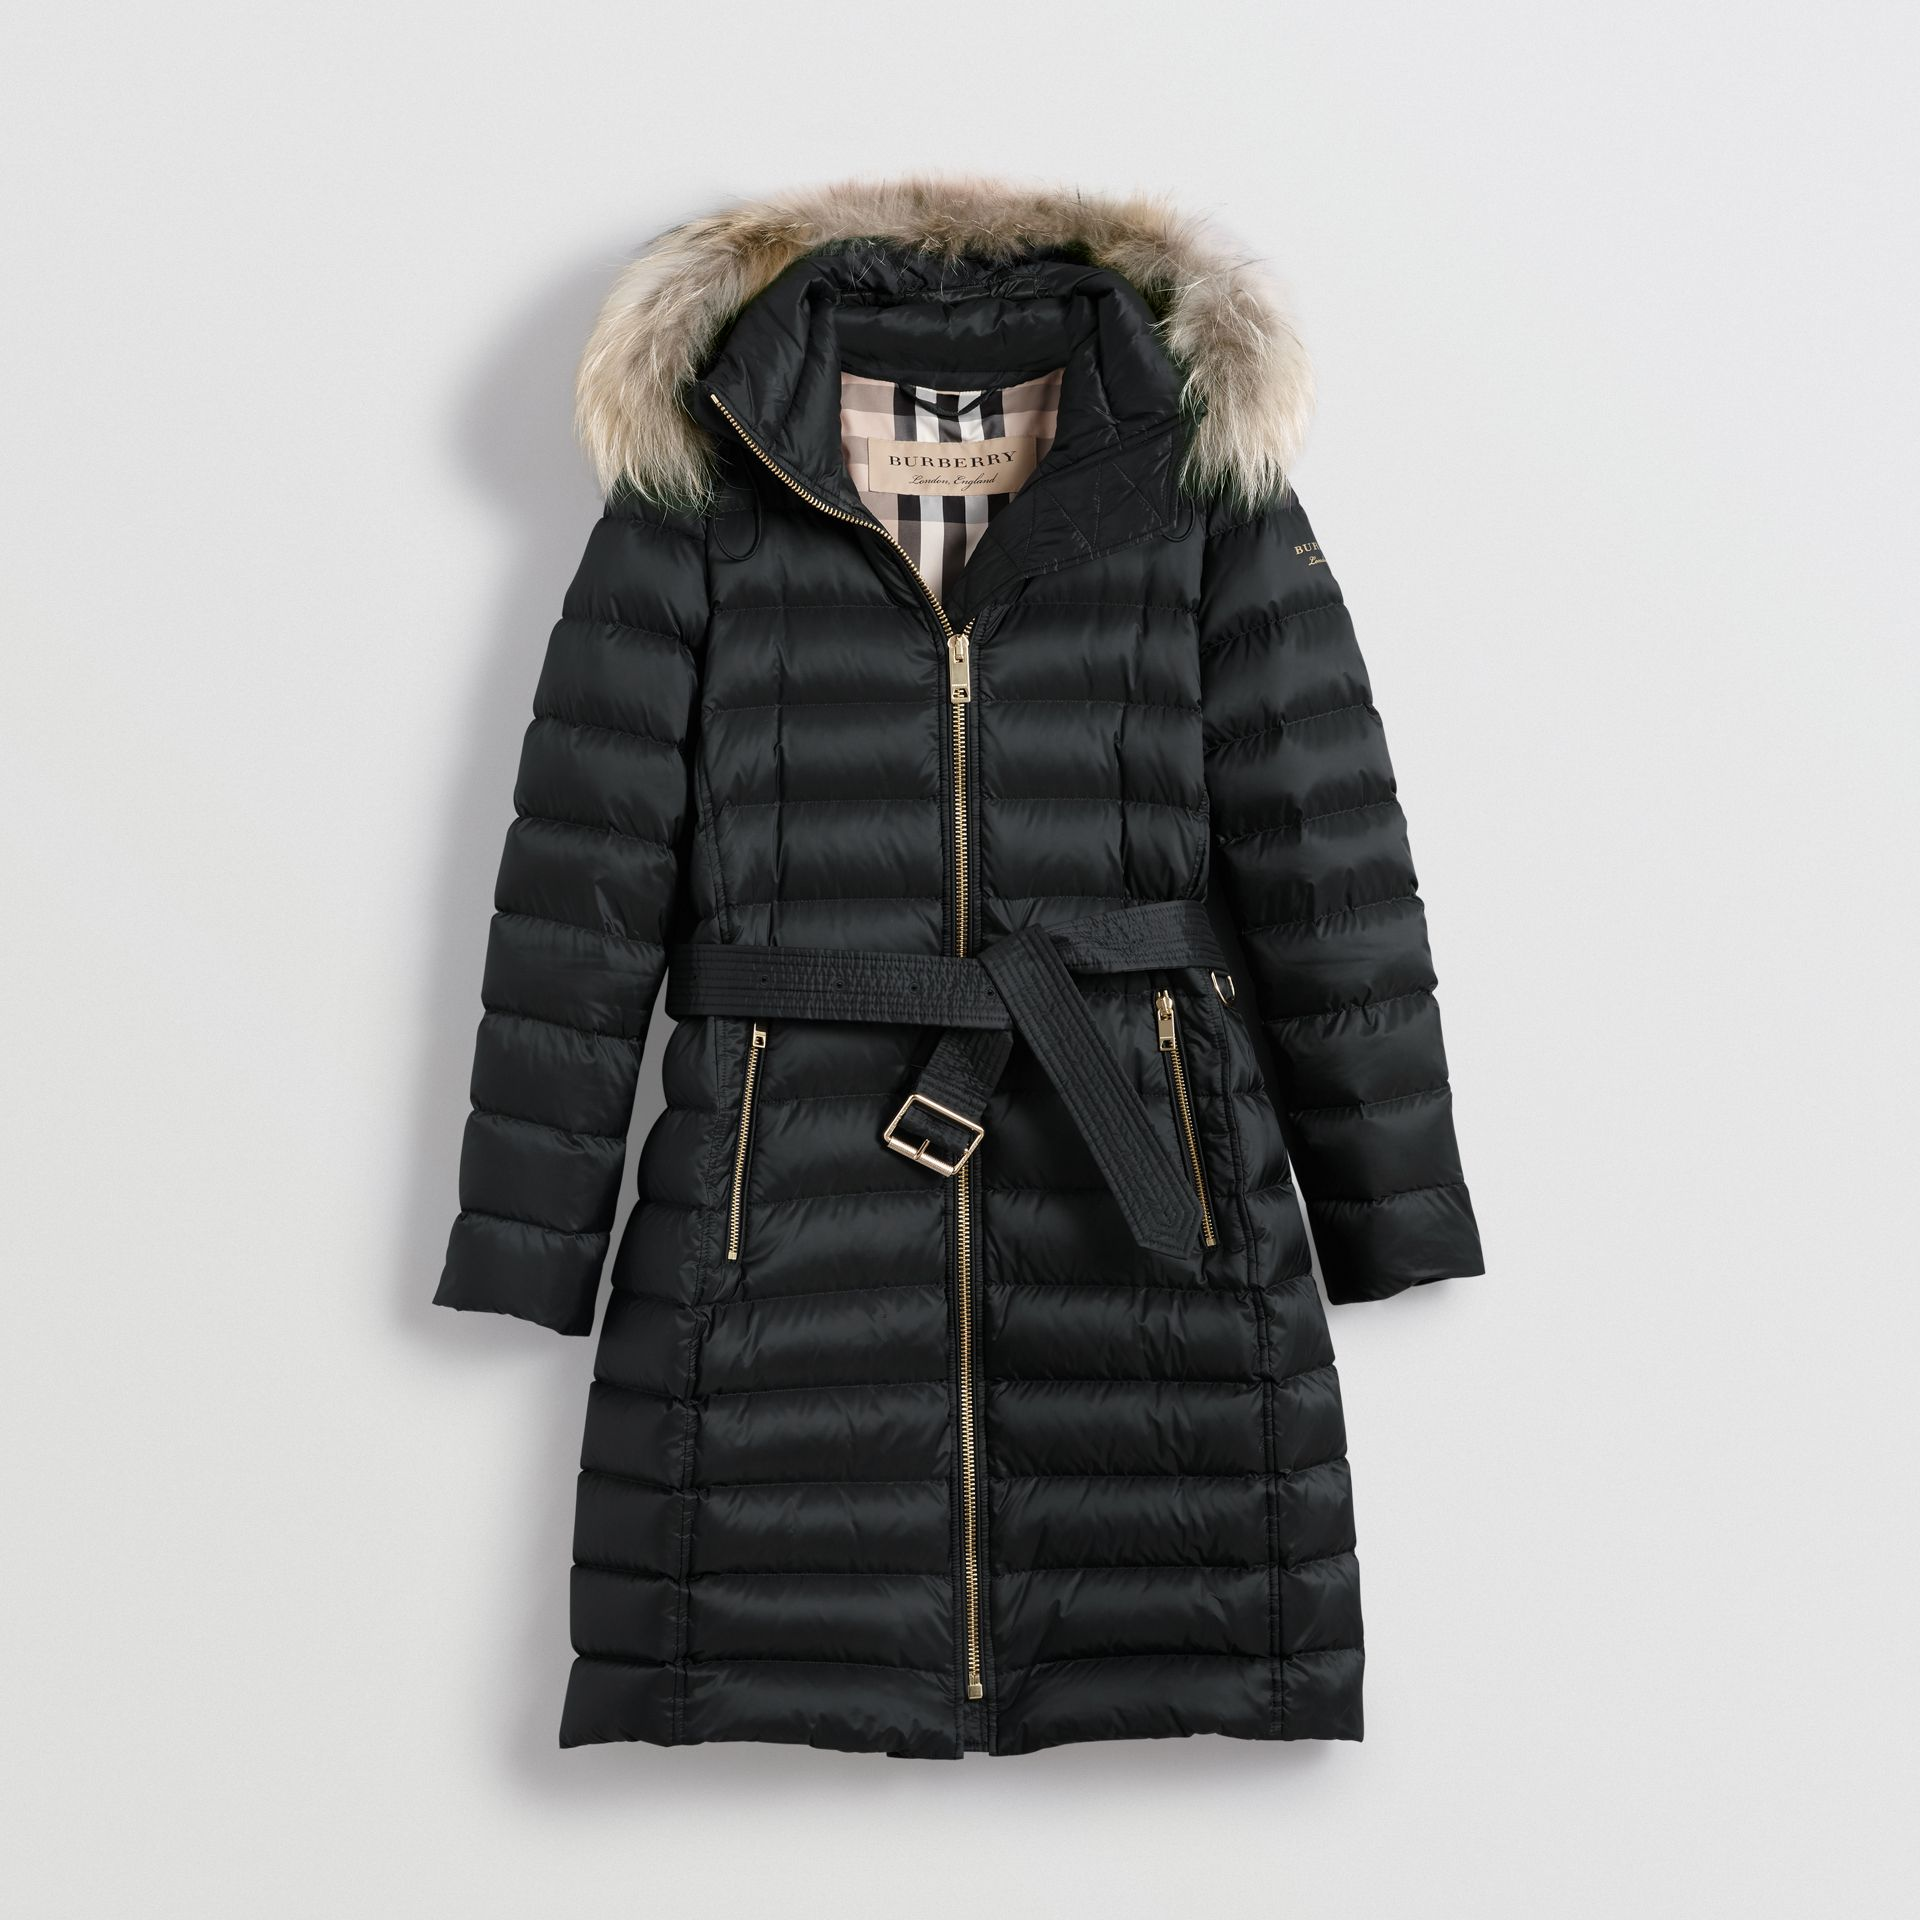 Detachable Fur Trim Down-filled Puffer Coat with Hood in Black - Women | Burberry United States - gallery image 3